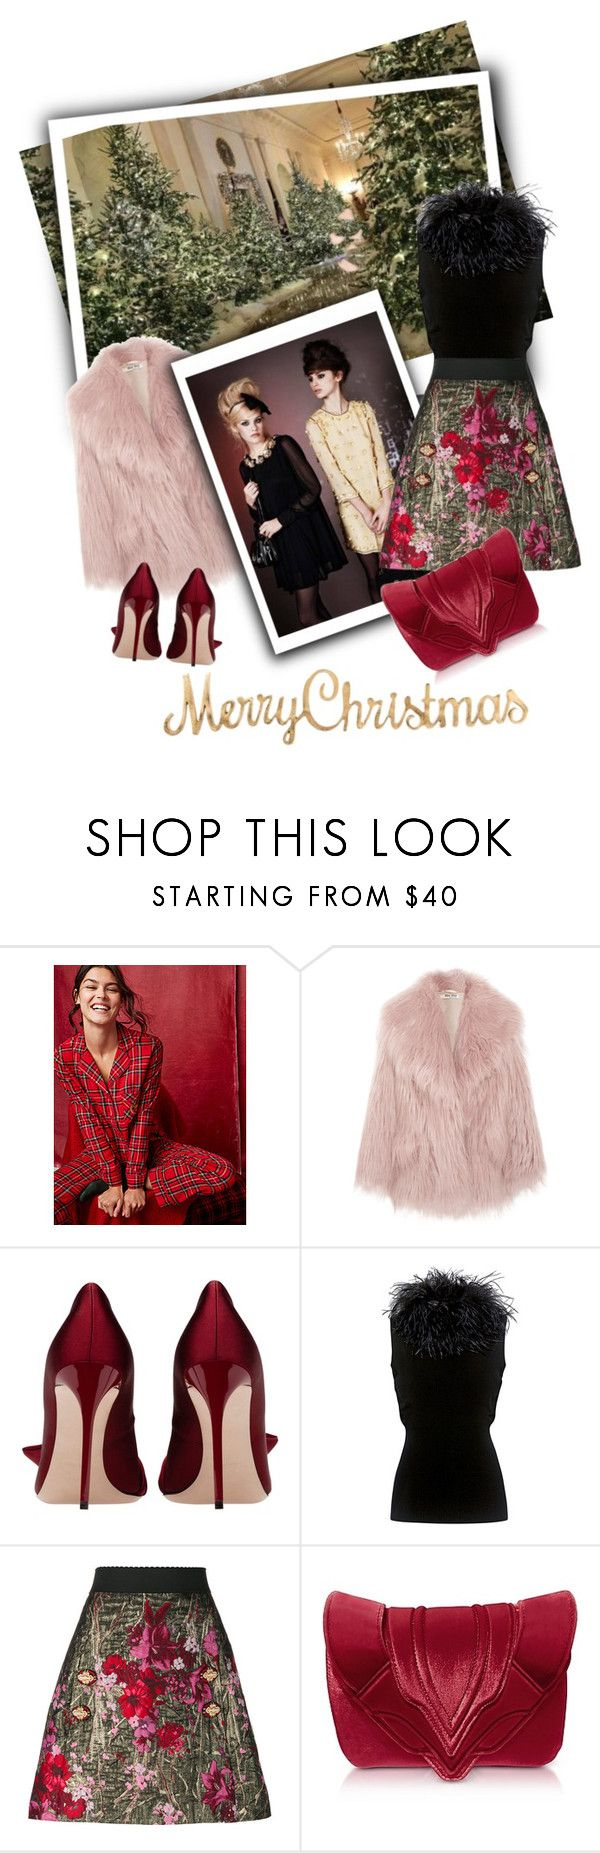 """Merry Christmas"" by tsma ❤ liked on Polyvore featuring Miiyu, Miu Miu, Topshop, Boutique Moschino, Dolce&Gabbana and Elena Ghisellini"